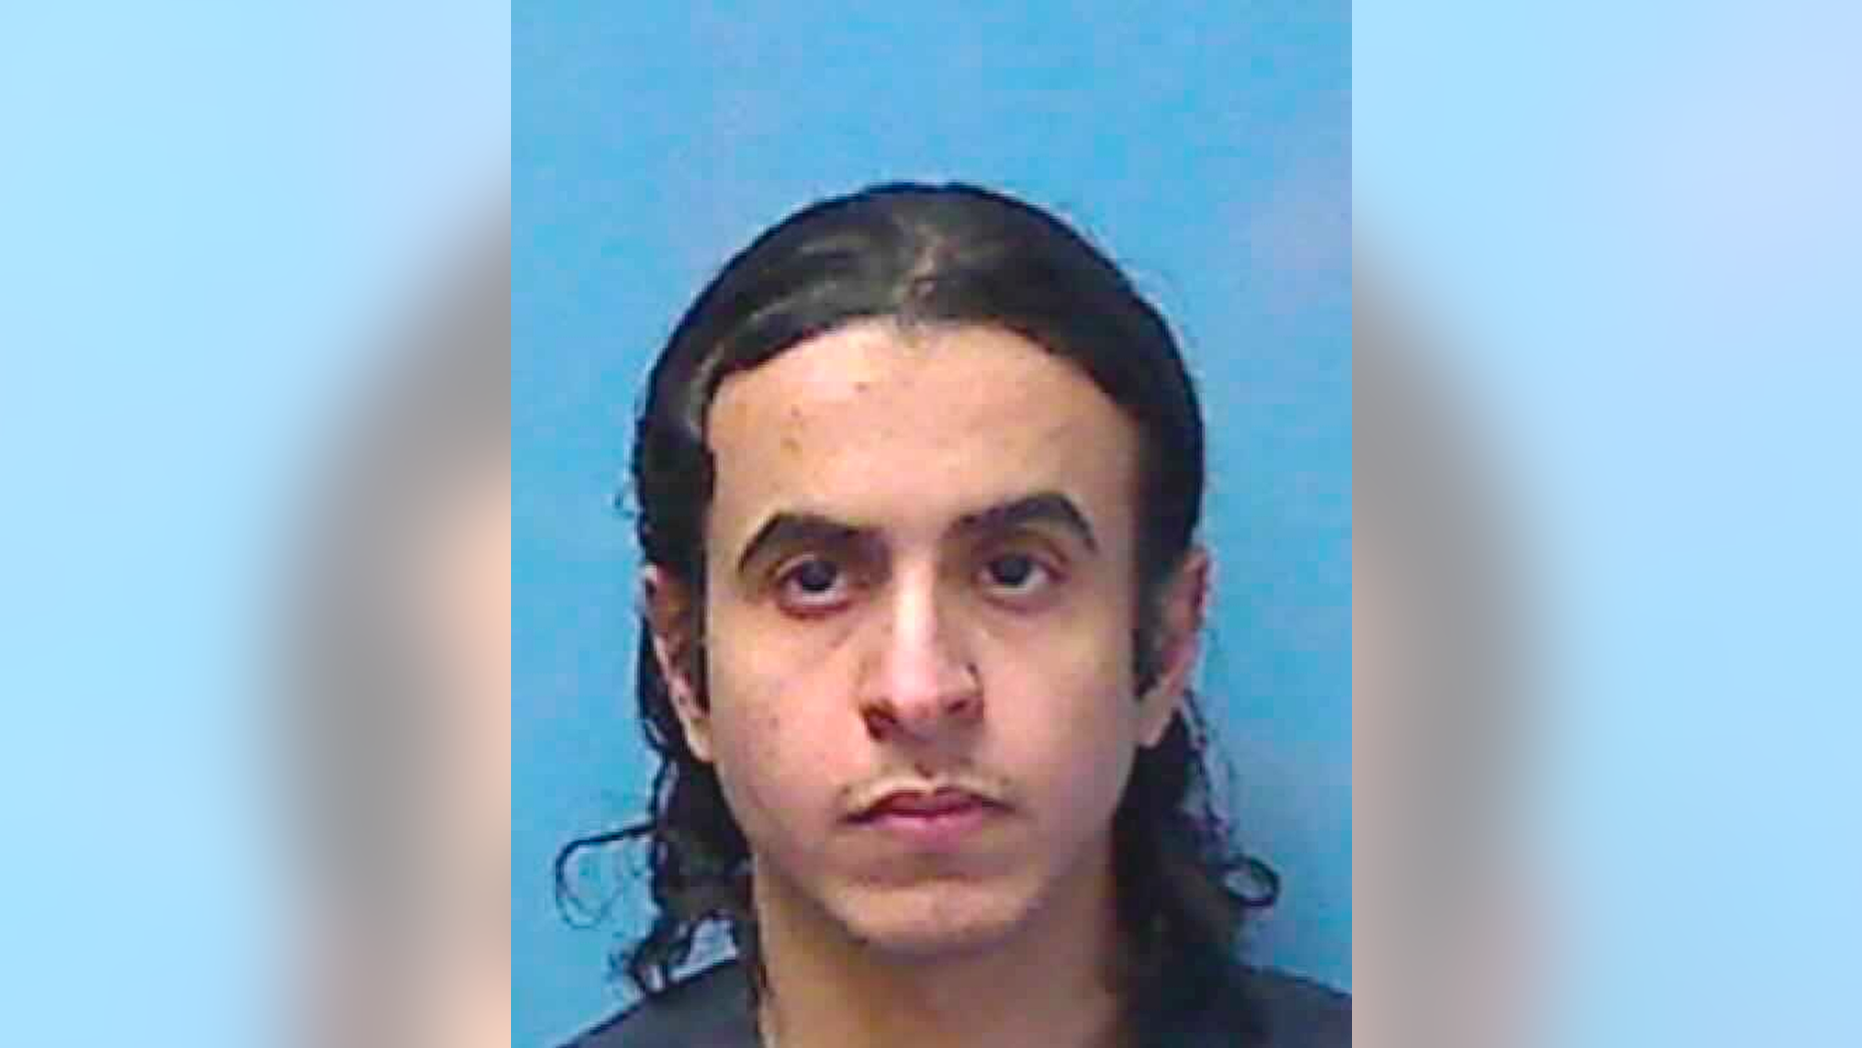 This undated photo provided by the Nevada Department of Corrections shows Mazen Alotaibi, 30, of Saudi Arabia. A Nevada judge is being asked for a sentencing do-over for Alotaibi, a former Saudi Arabian air force sergeant serving 35 years in prison for kidnapping and sexually assaulting a 13-year-old boy at a Las Vegas Strip hotel on New Year's Eve 2012. (Nevada Department of Corrections via AP)